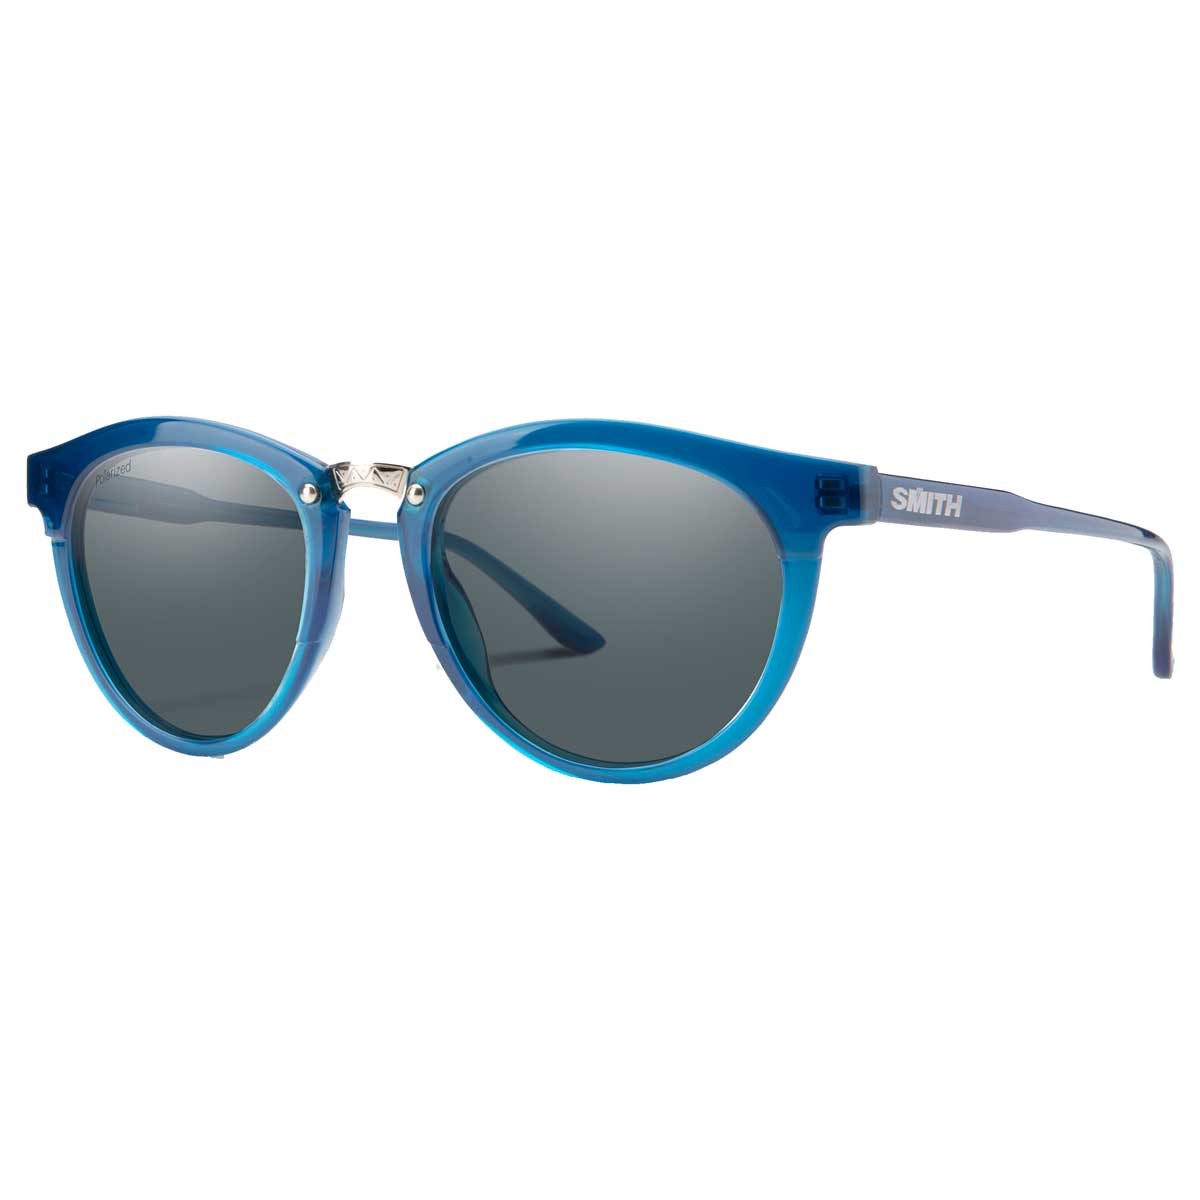 Smith Questa sunglasses in Cool Blue with Grey Polarized lenses